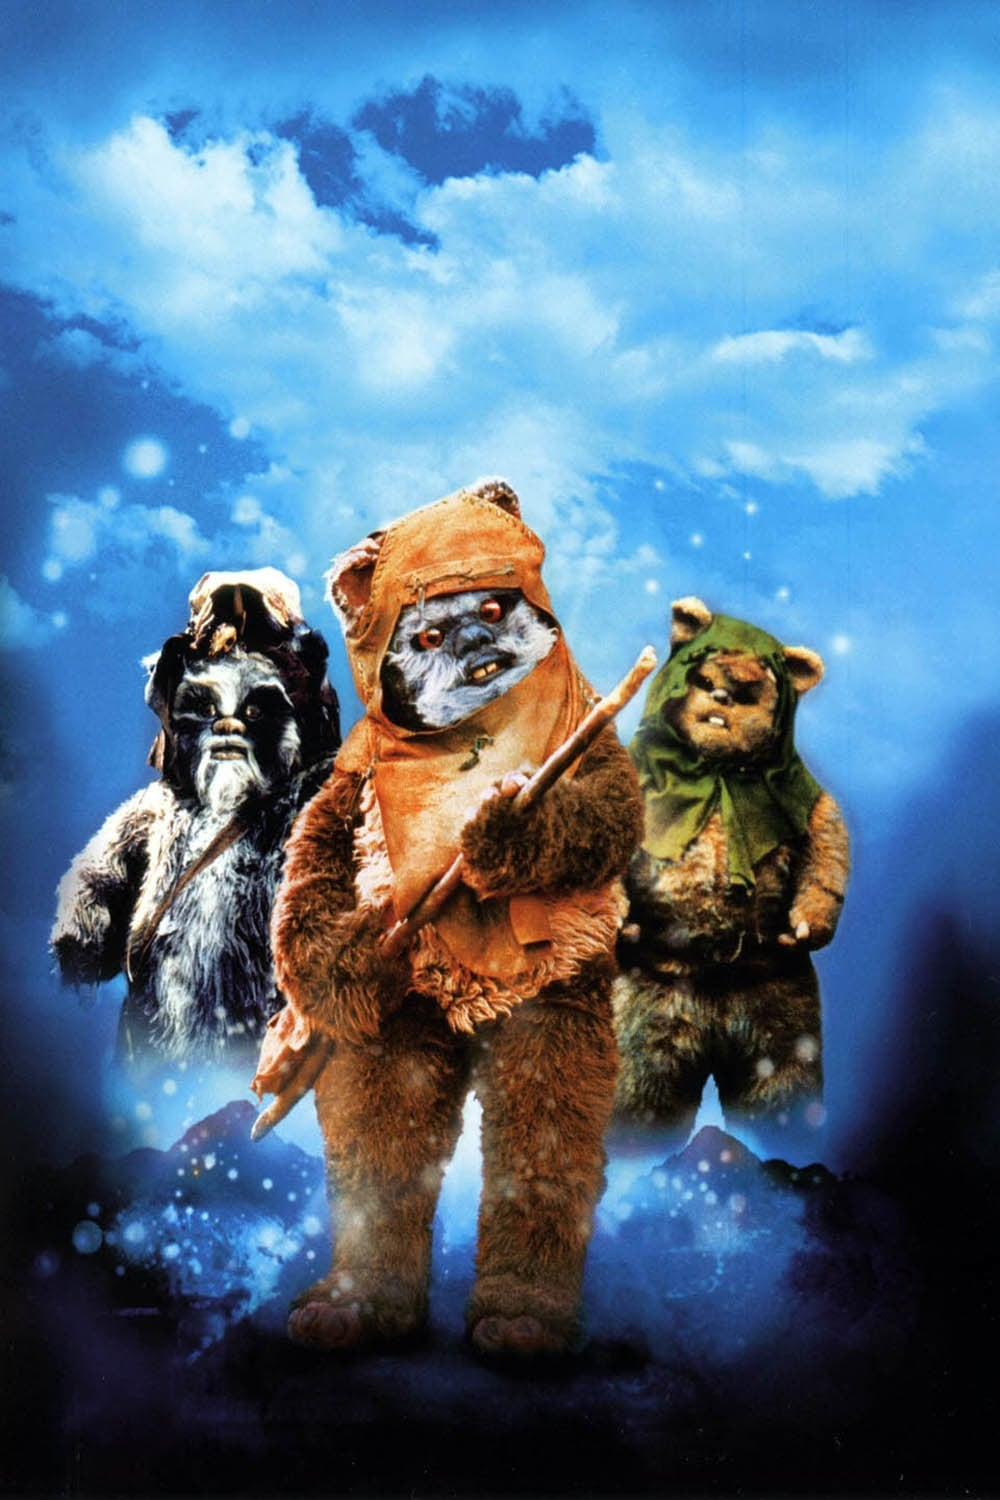 All movies from star wars the ewok adventures collection - Ewok wallpaper ...